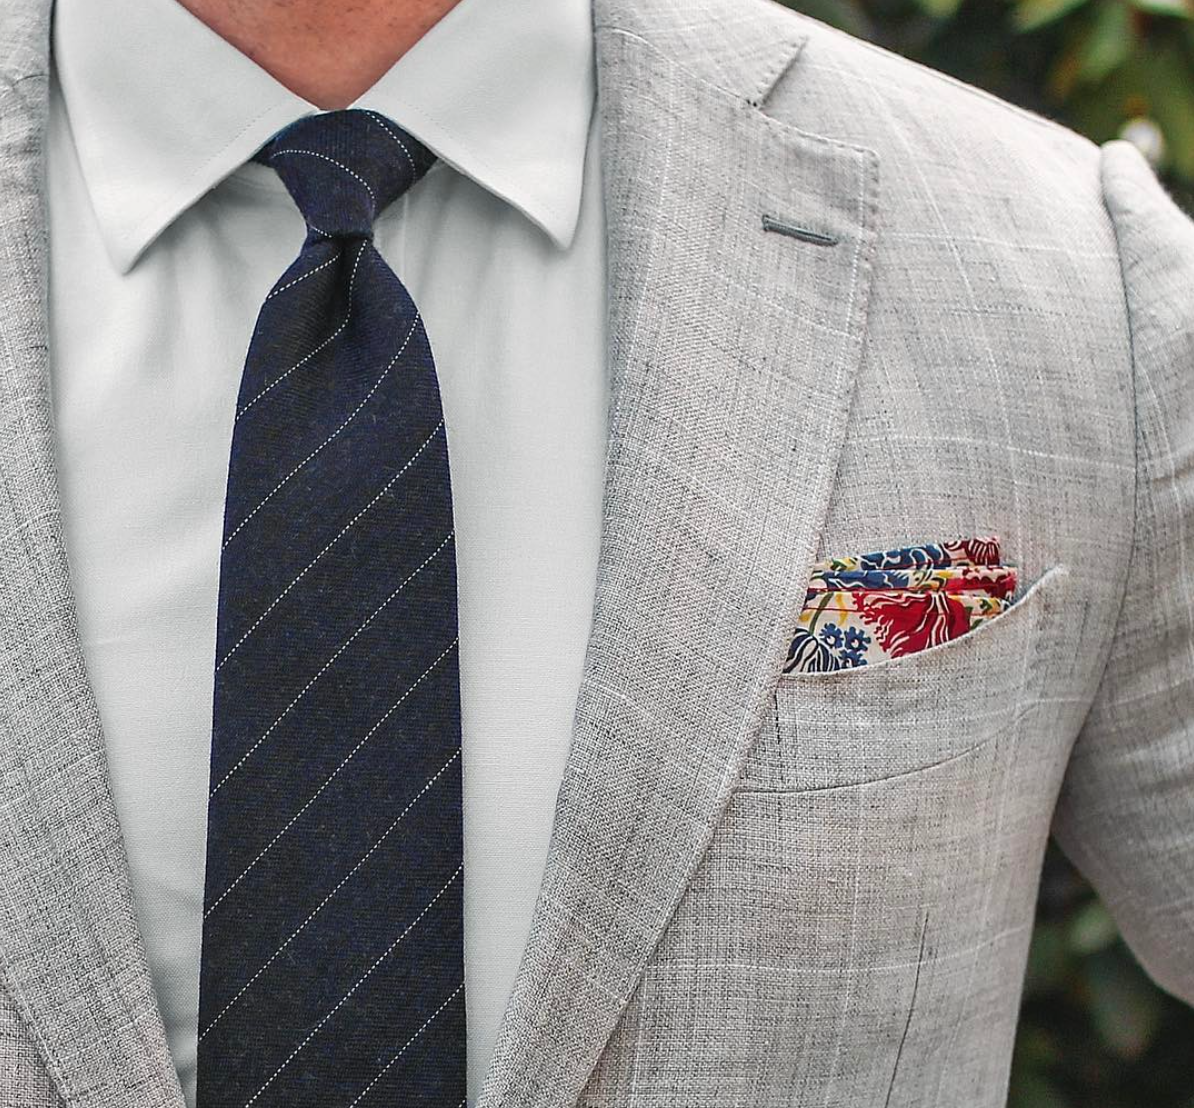 Pencil striped tie in midnight blue bowsnties styled